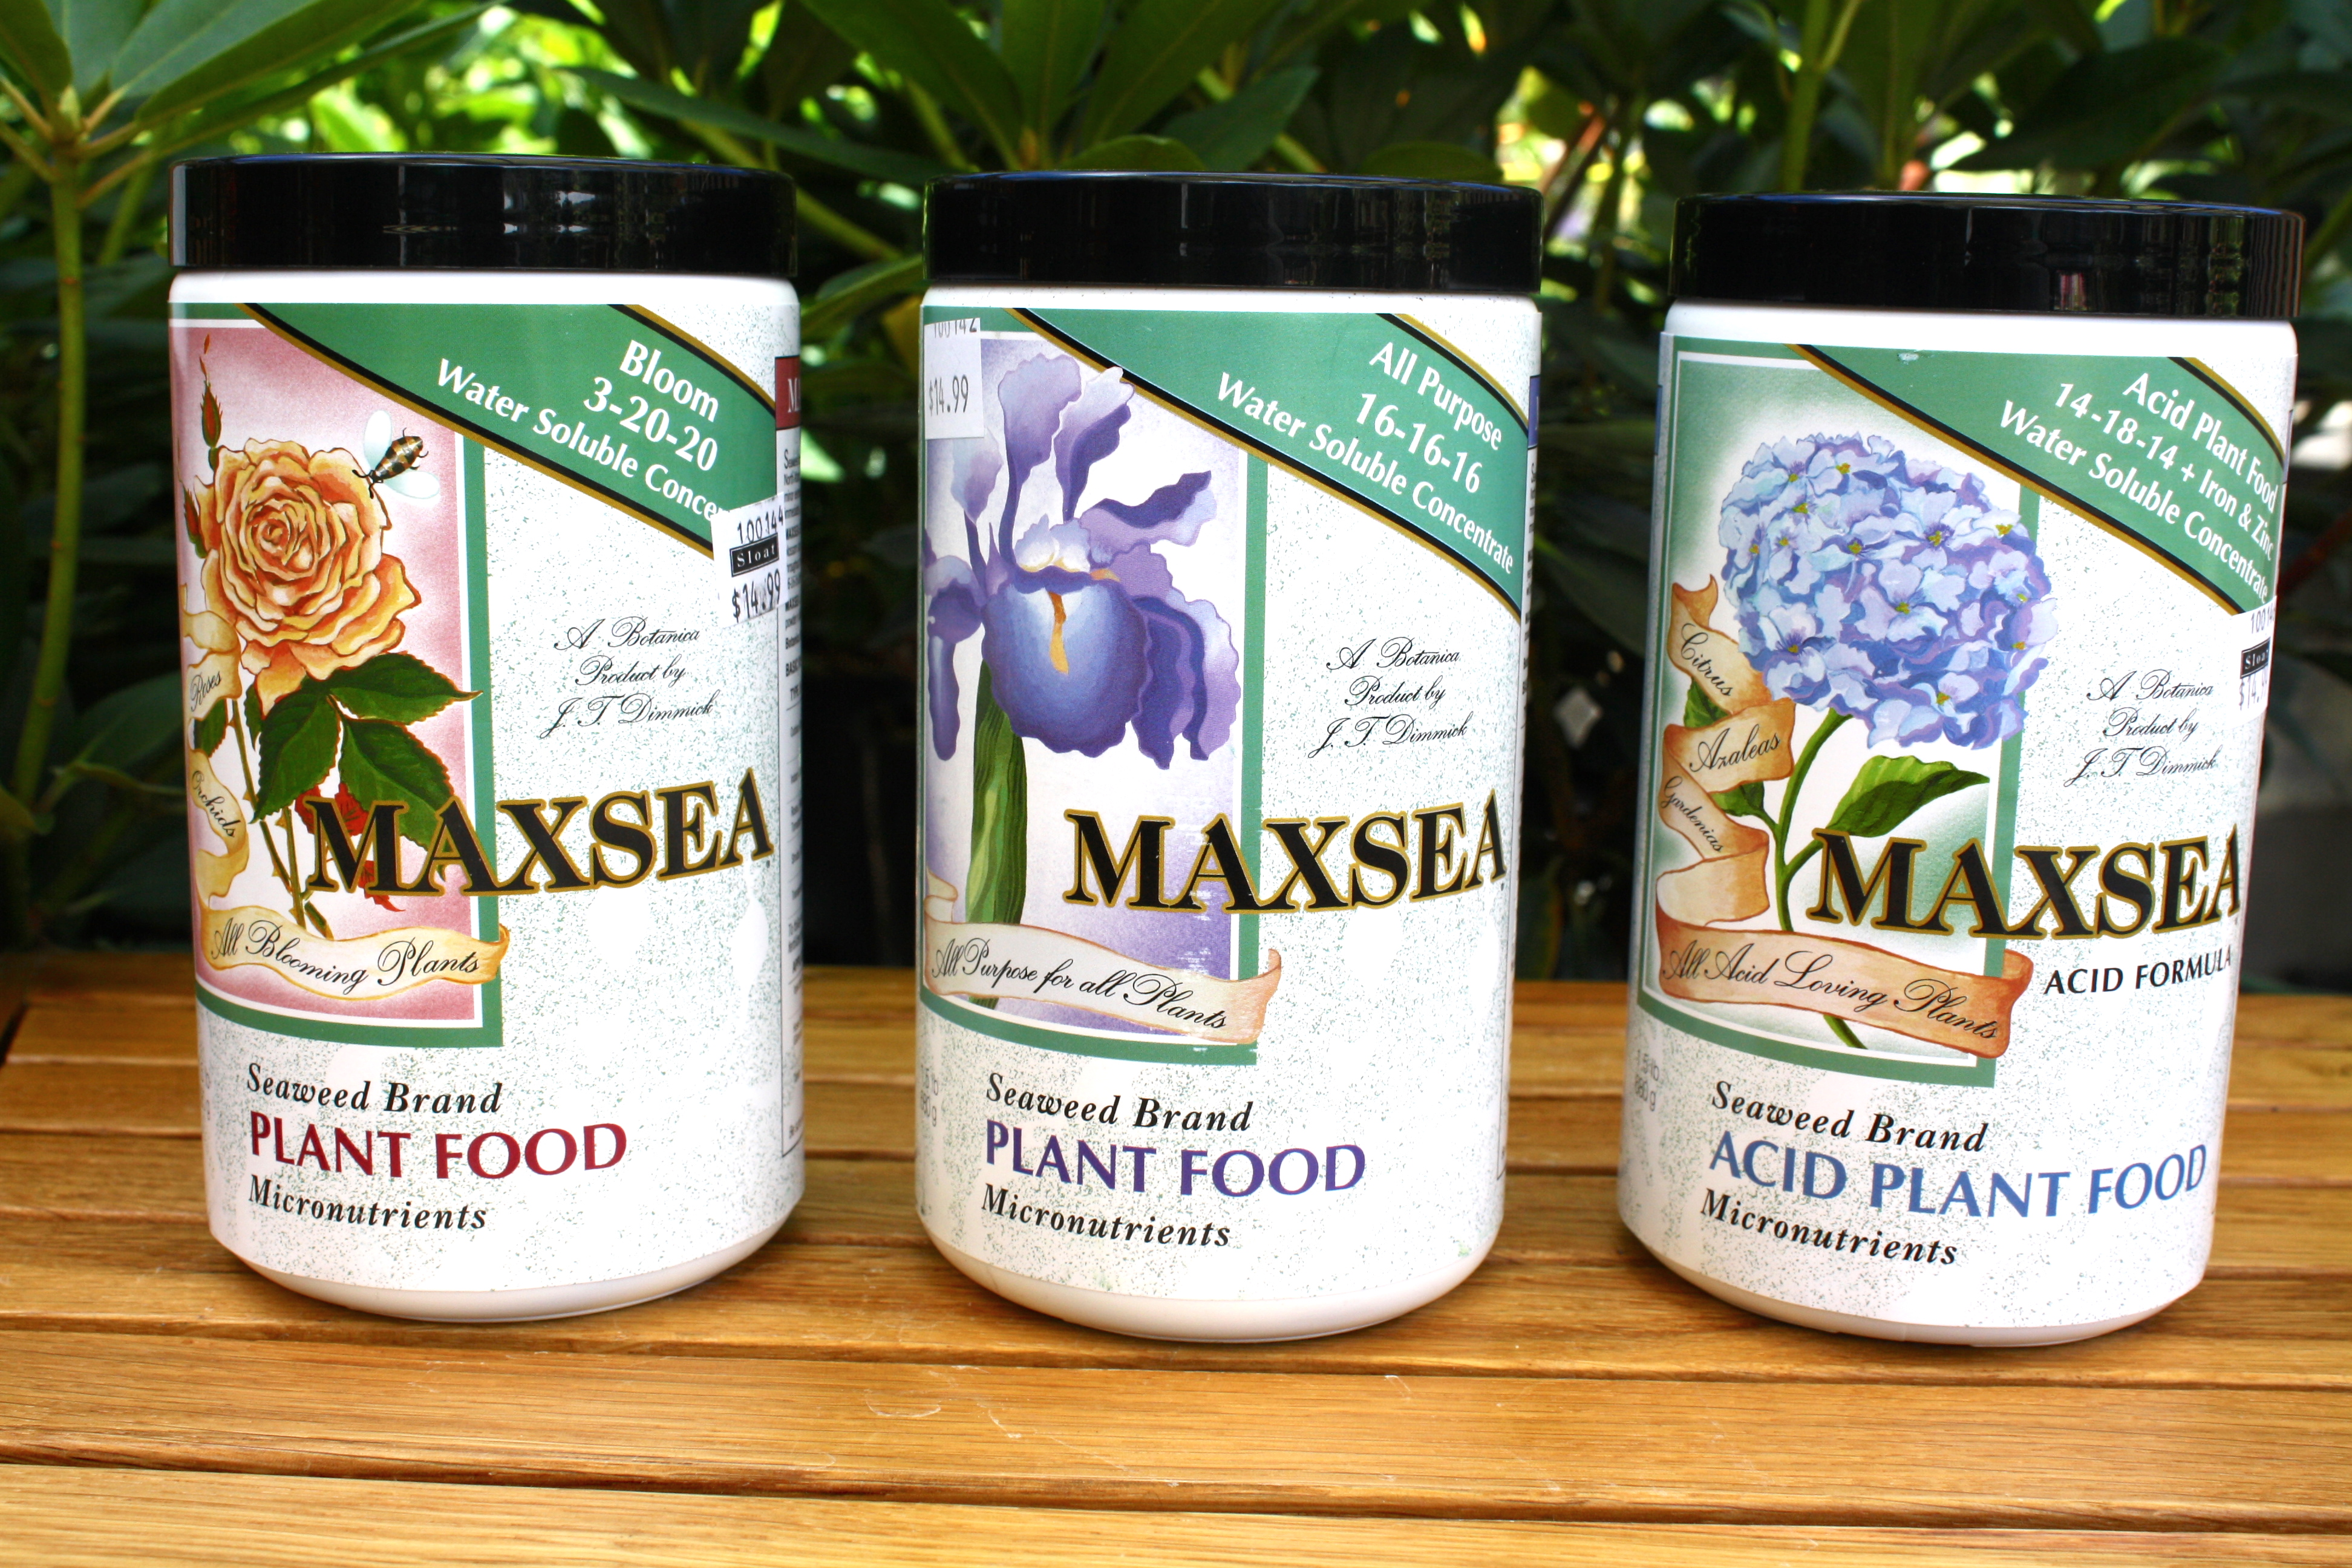 Meet our Family of Local Vendors & Growers: Maxsea plant